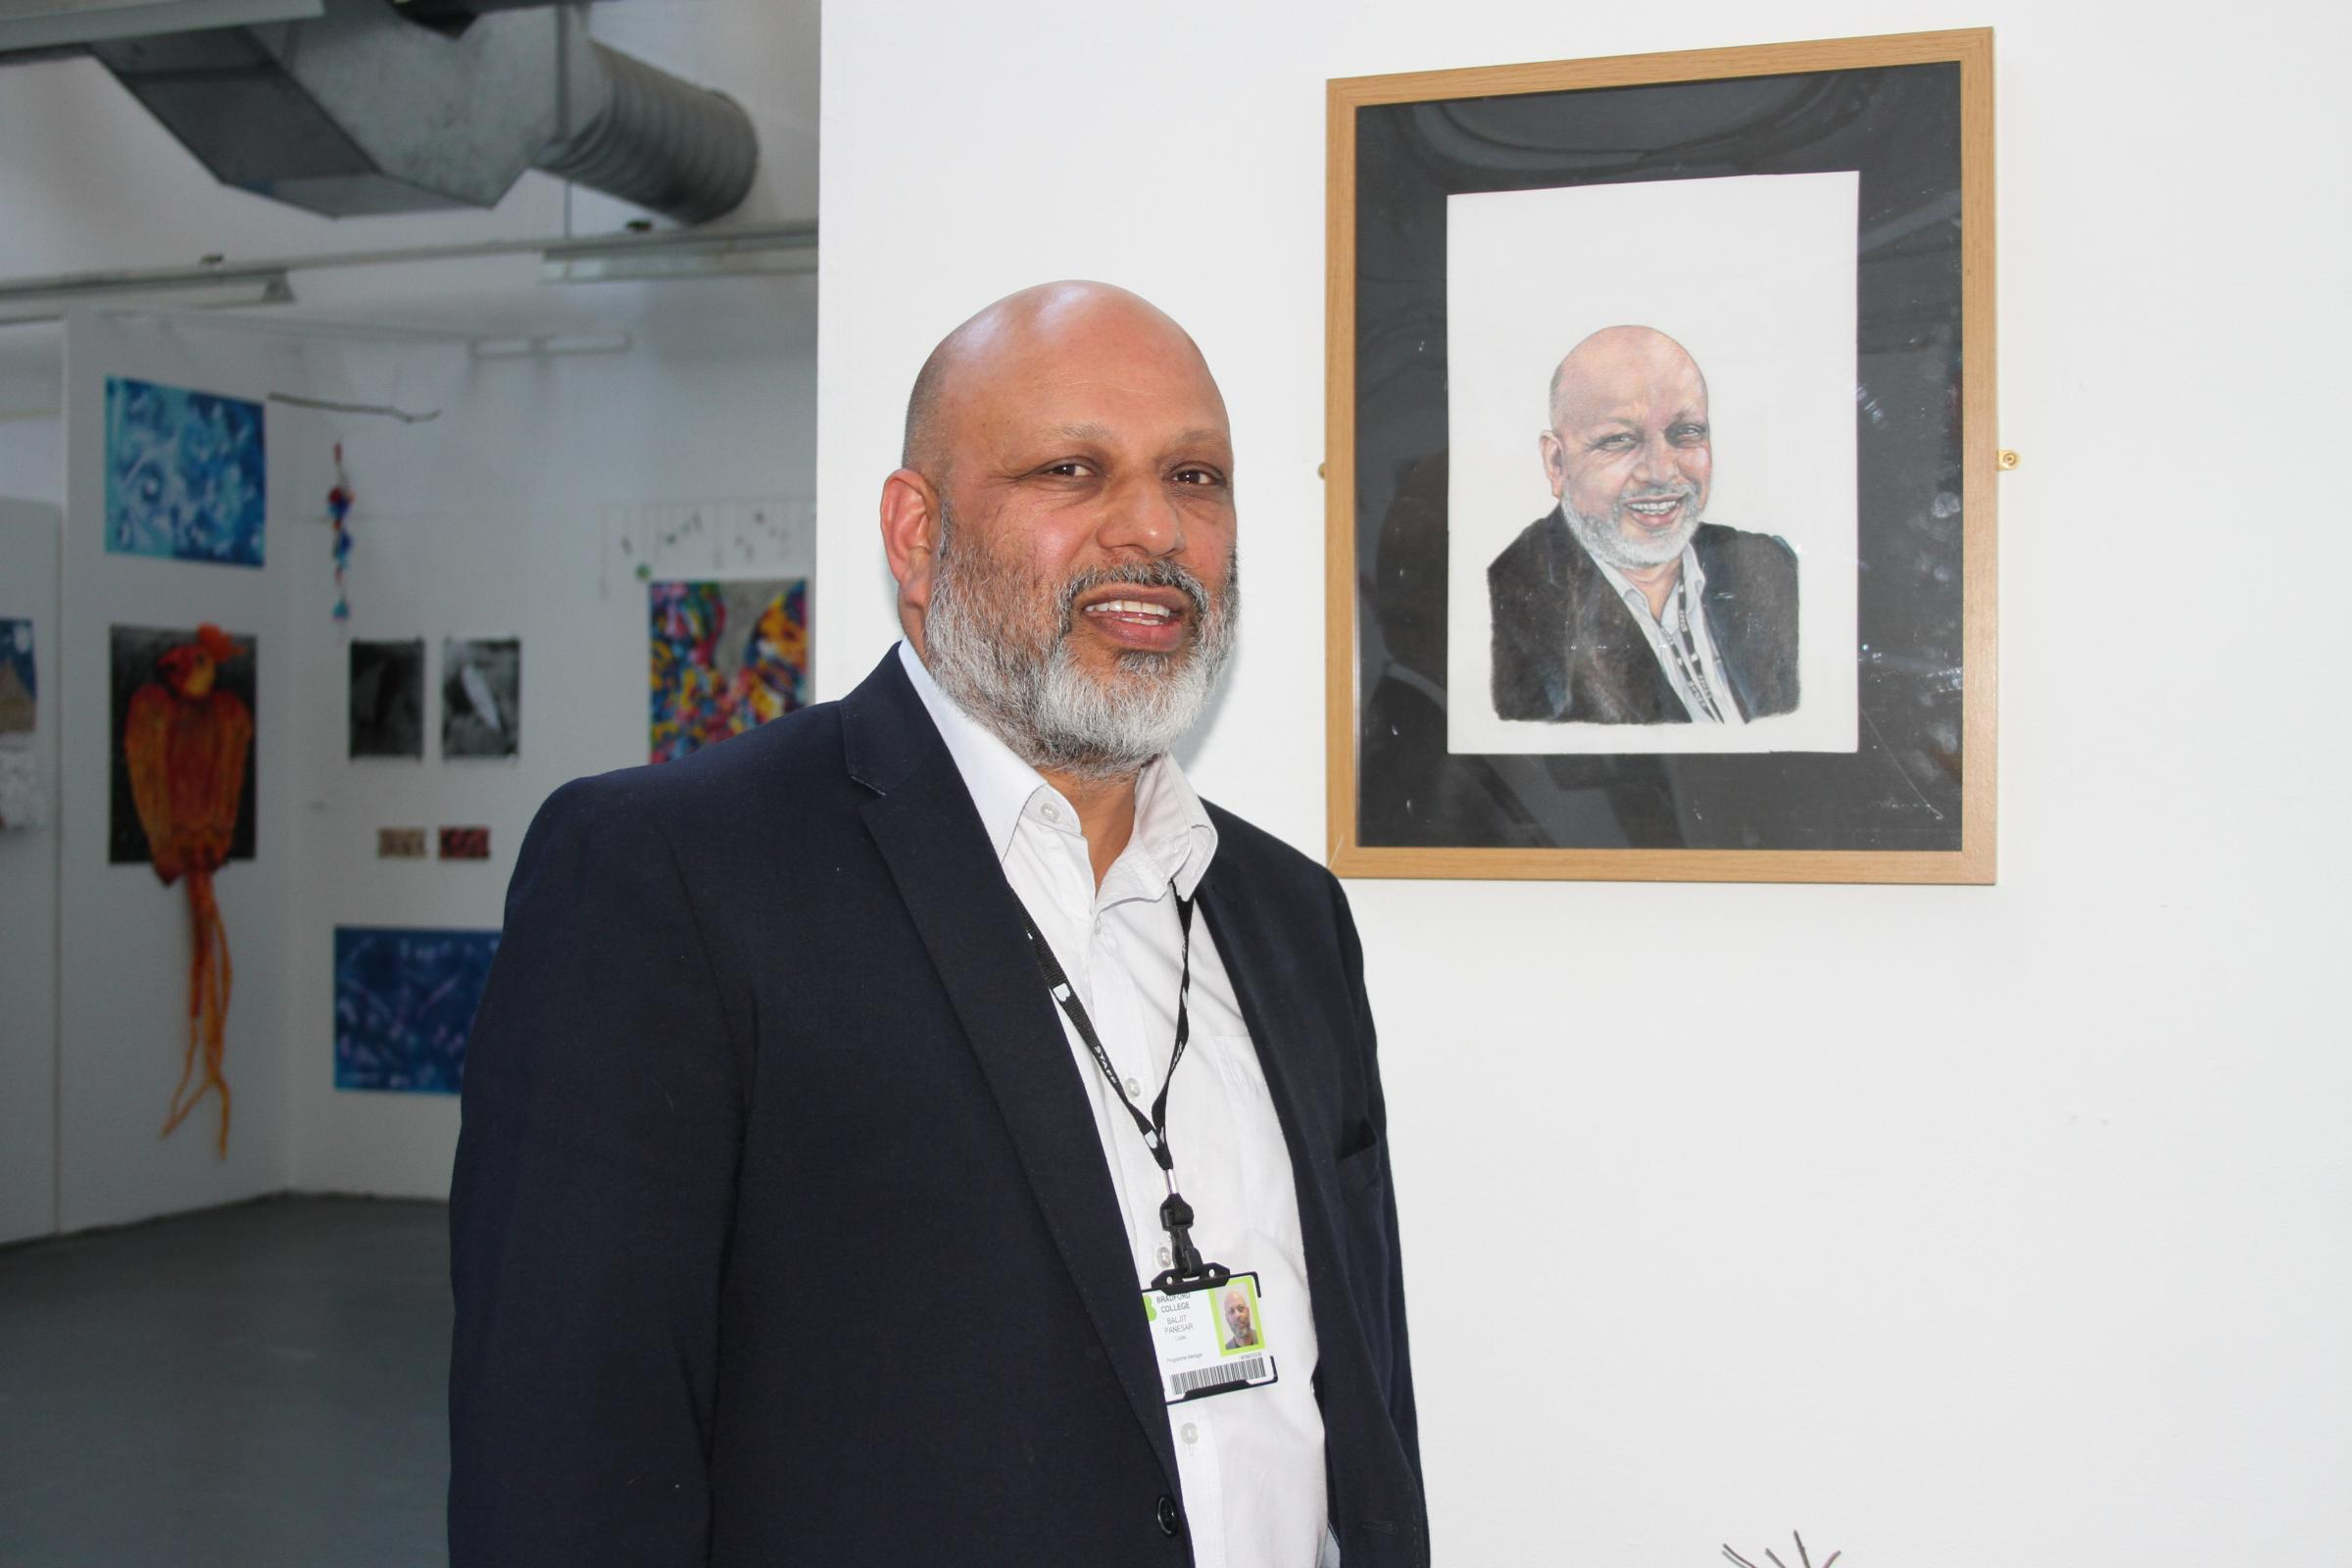 Baljit Panesar stood by the portrait of himself